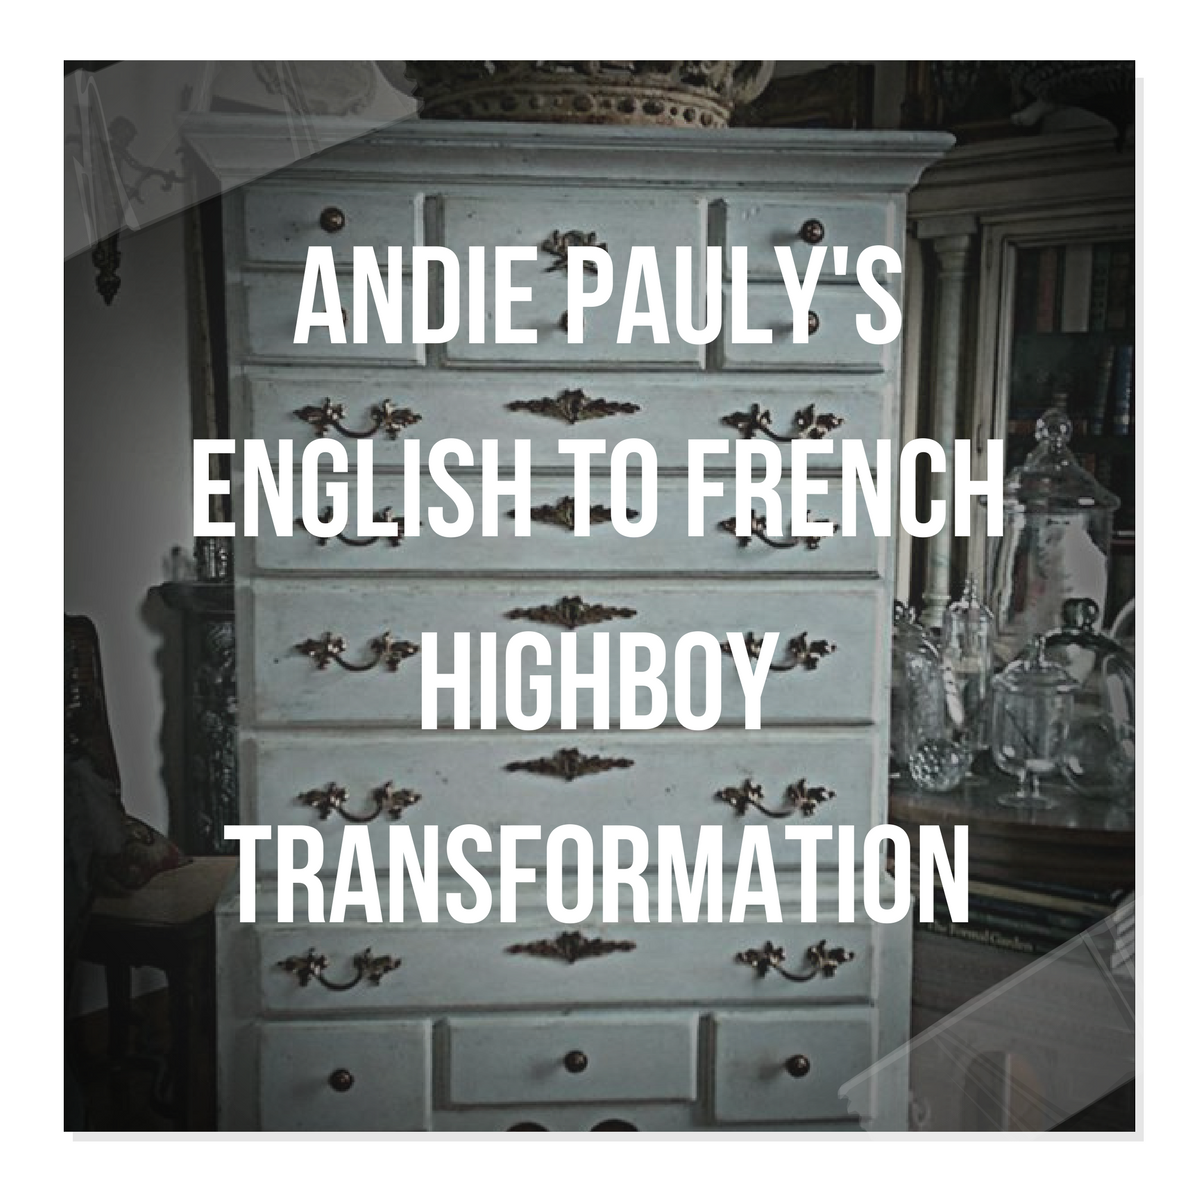 Andie Pauly's English To French Highboy Transformation